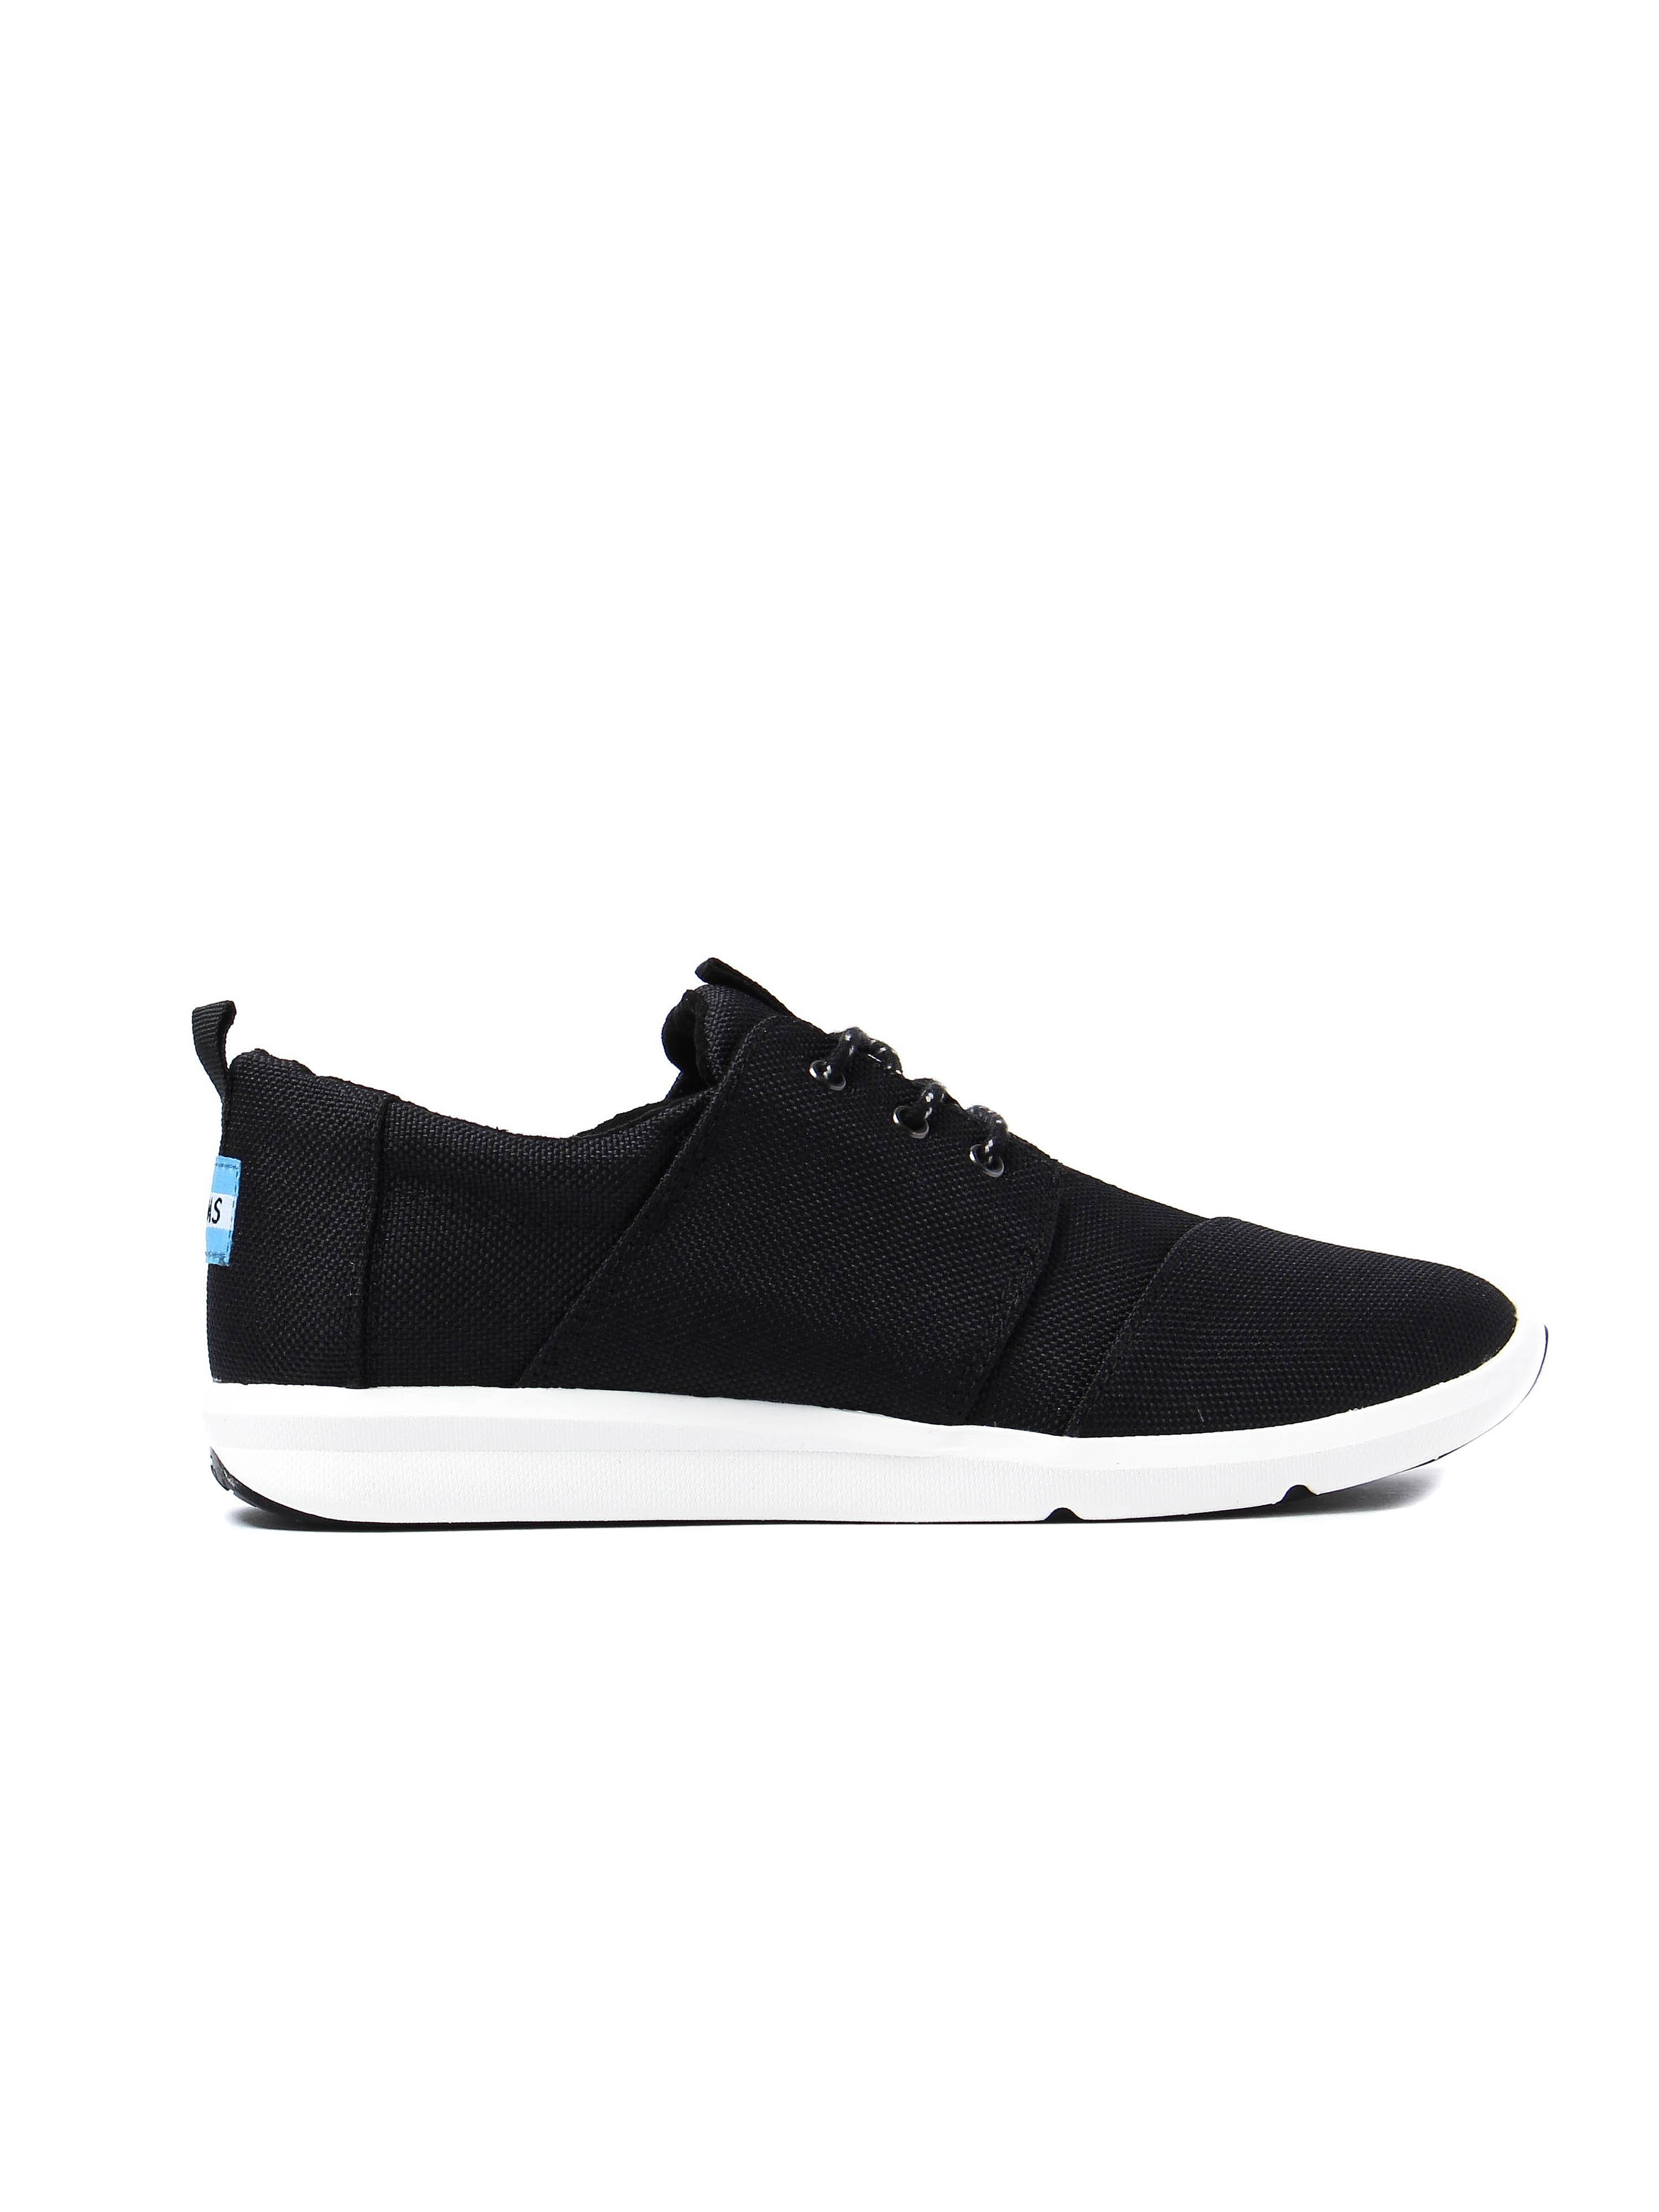 Toms Women's Del Rey Poly Canvas Trainers - Black